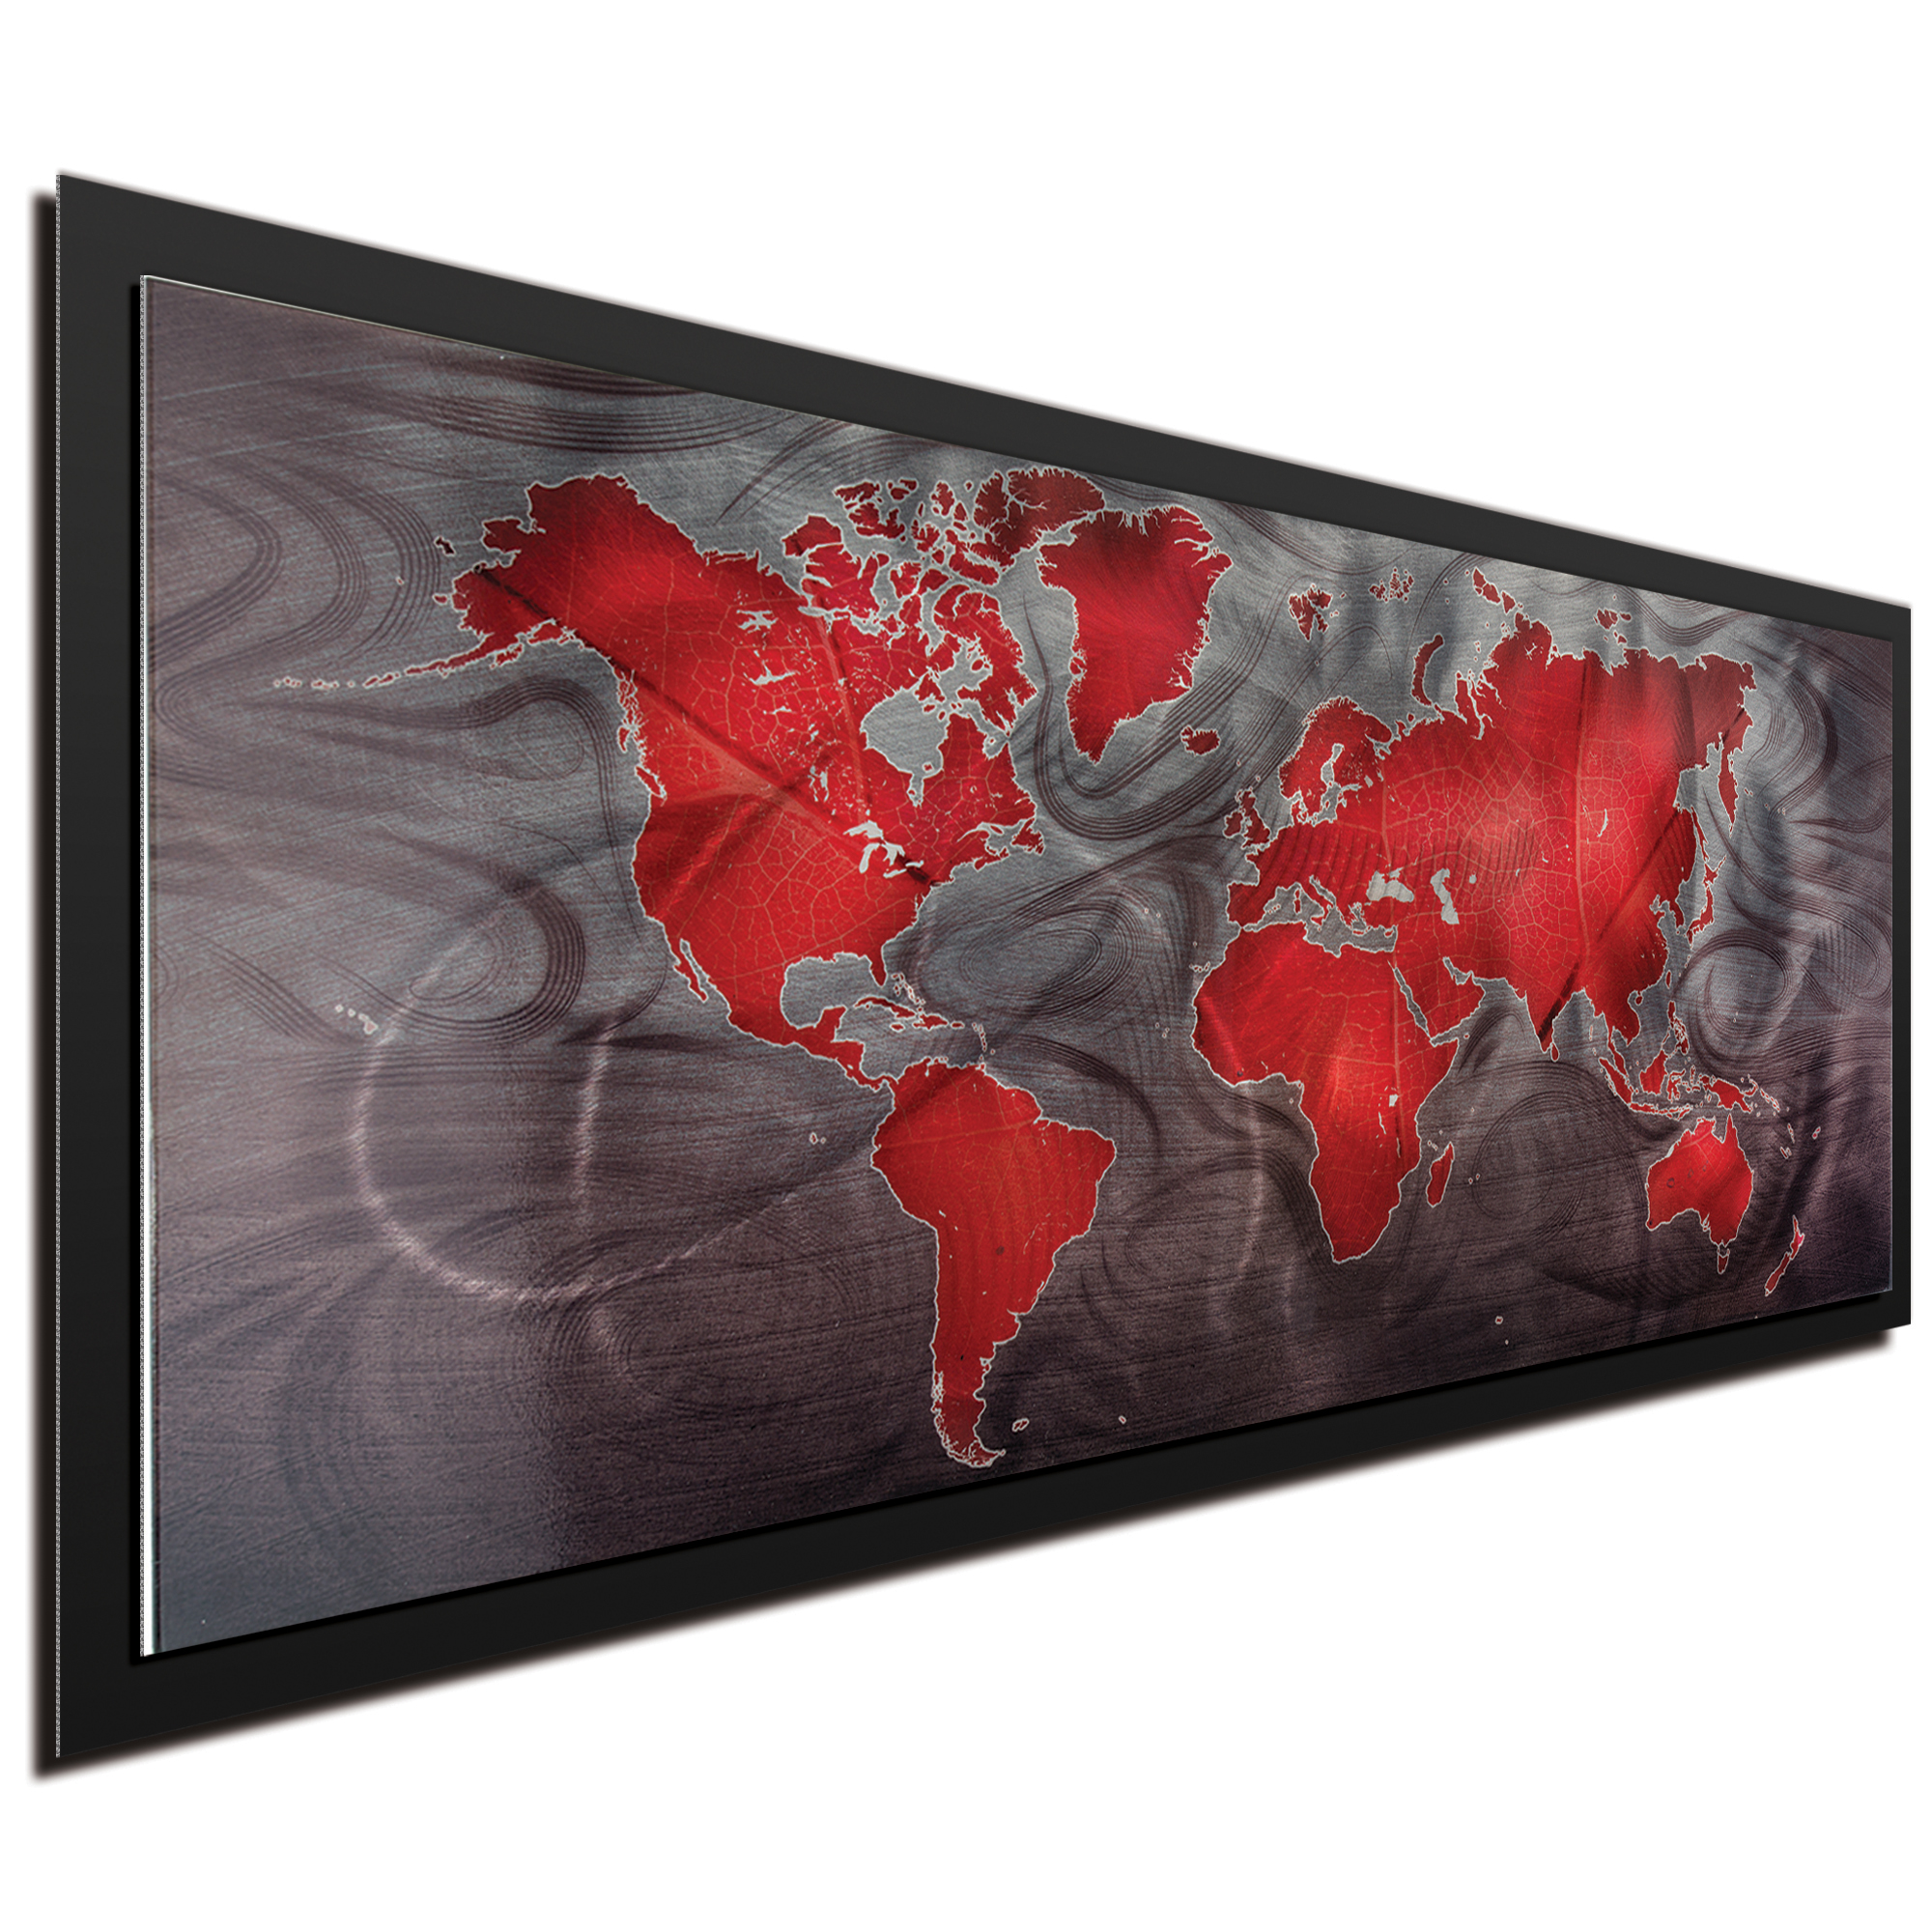 Red Pewter Land and Sea Framed - Image 2